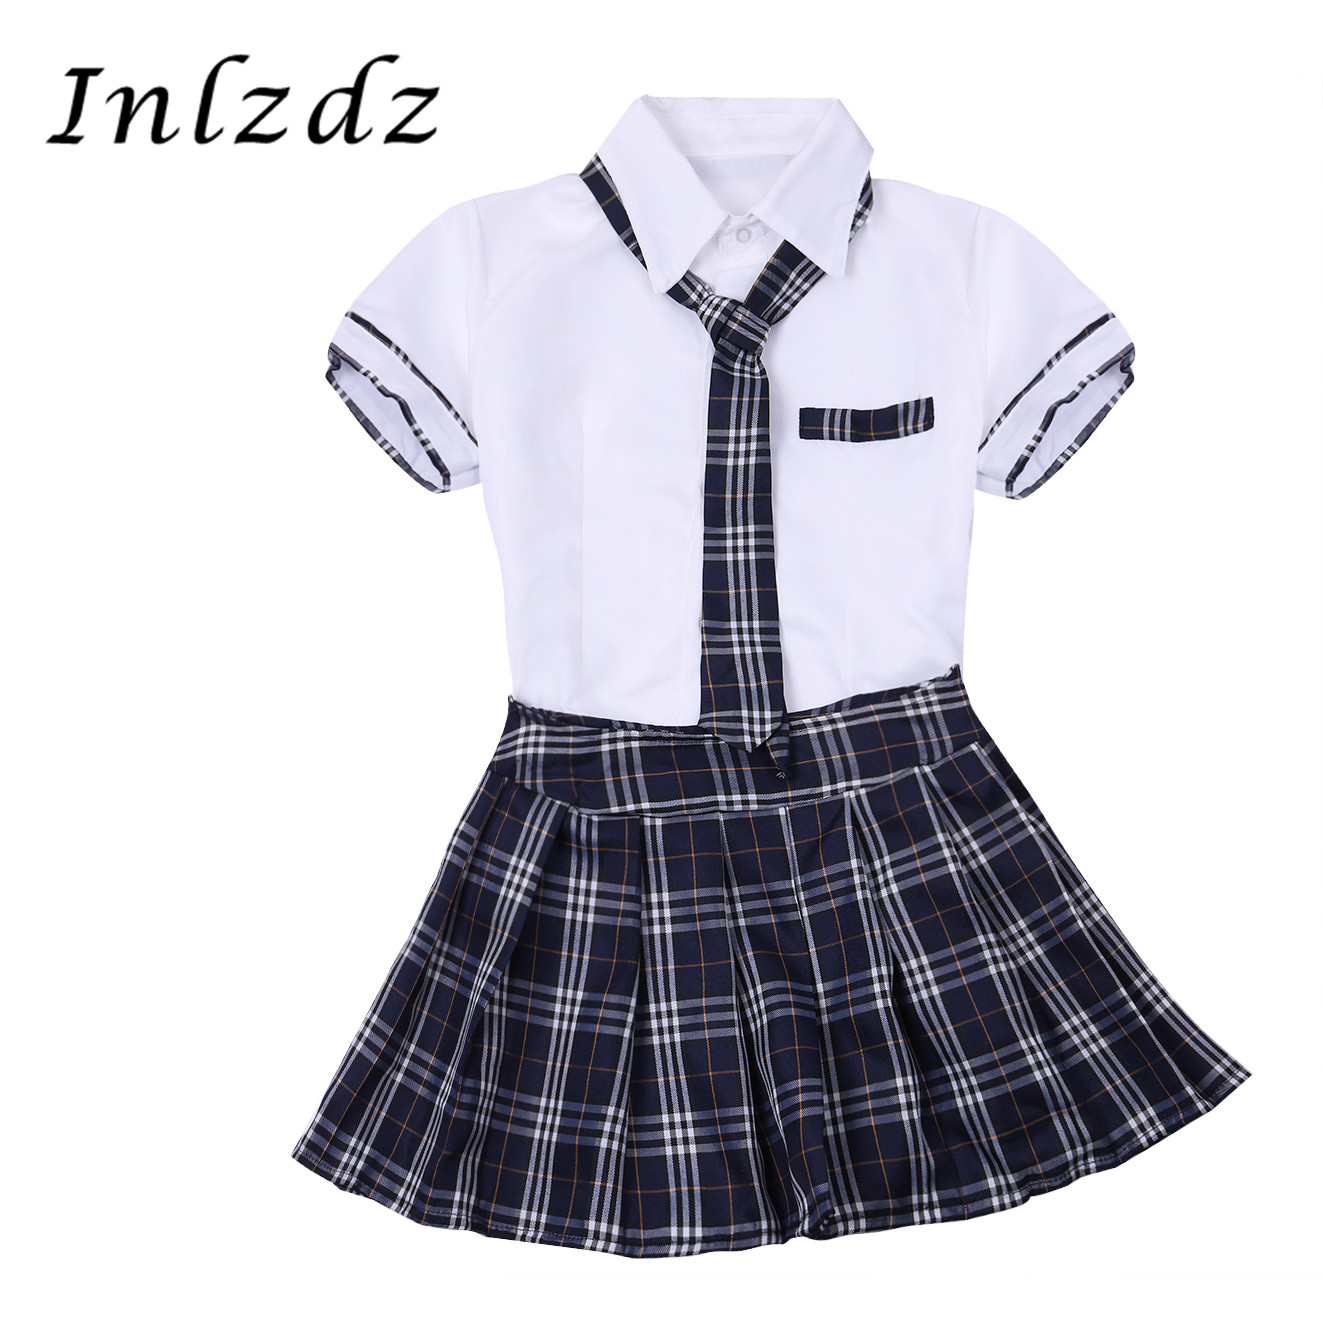 Women Girls Japanese School Uniform Students Class Clothing Cosplay Costume Short Sleeve Shirt With Plaid Skirt Sailor Suit